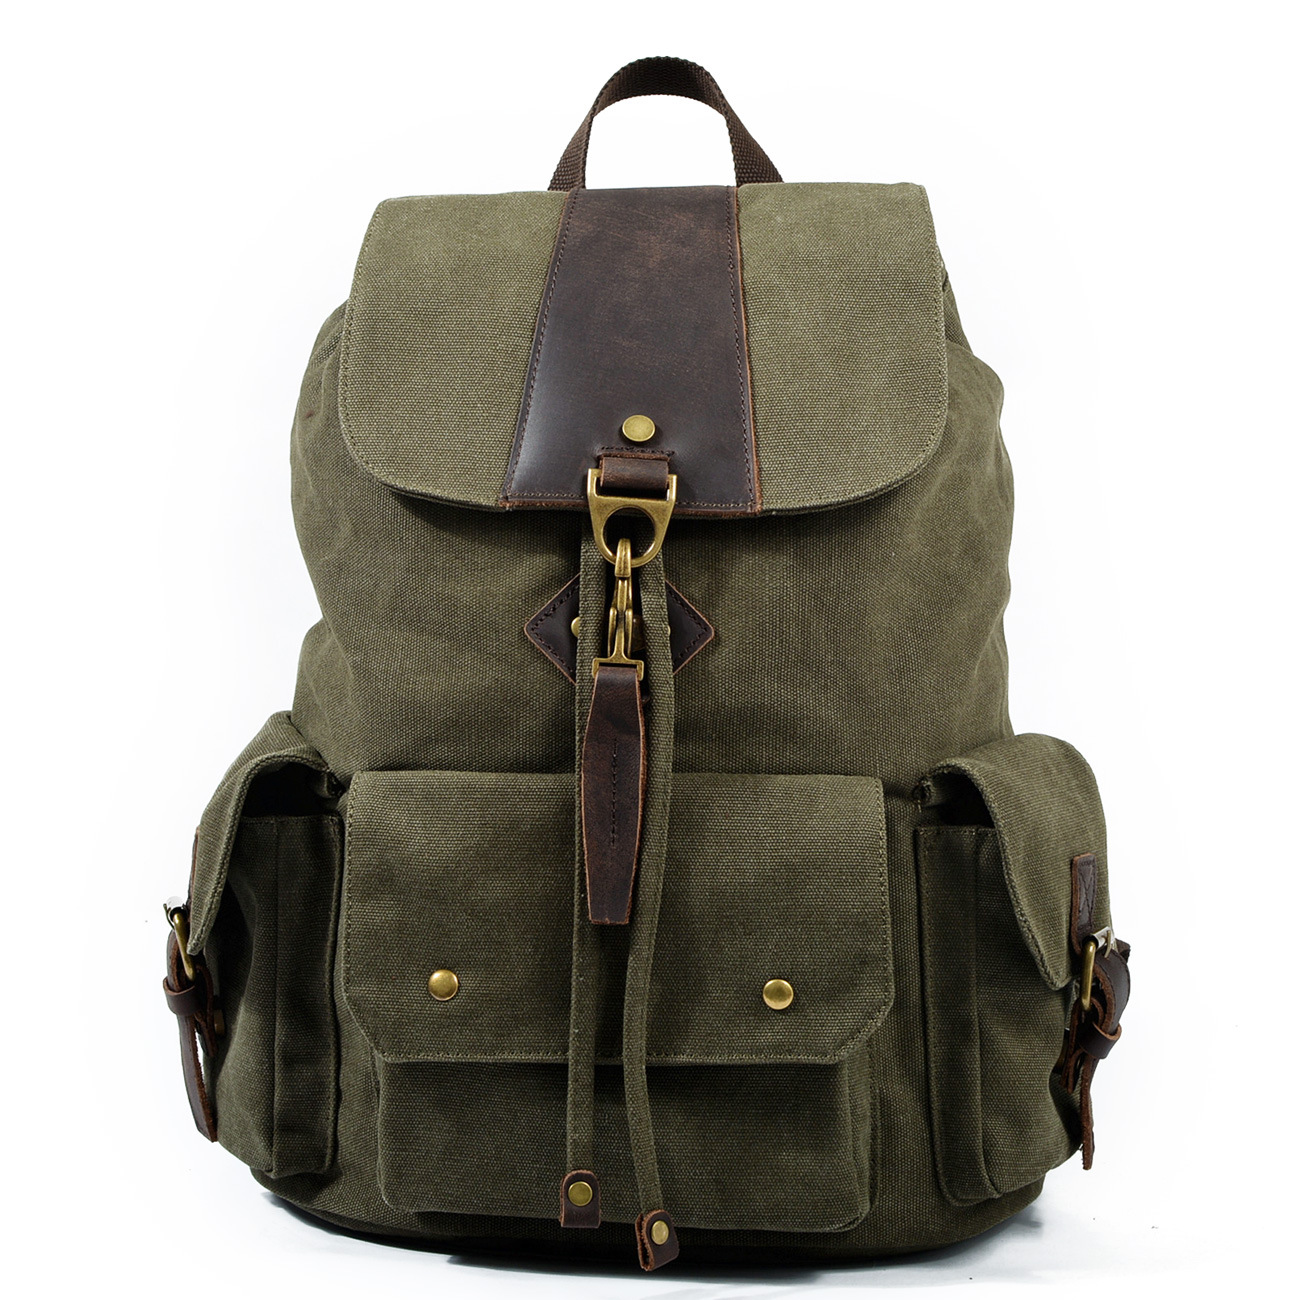 High Quality Man Canvas Backpack Men Laptop Backpacks Casual Bookbag Unisex School Bags Vintage Brand Male Travel Rucksack high quality british style vintage canvas backpack rucksack school bags for teenagers travel bag backpacks for laptop